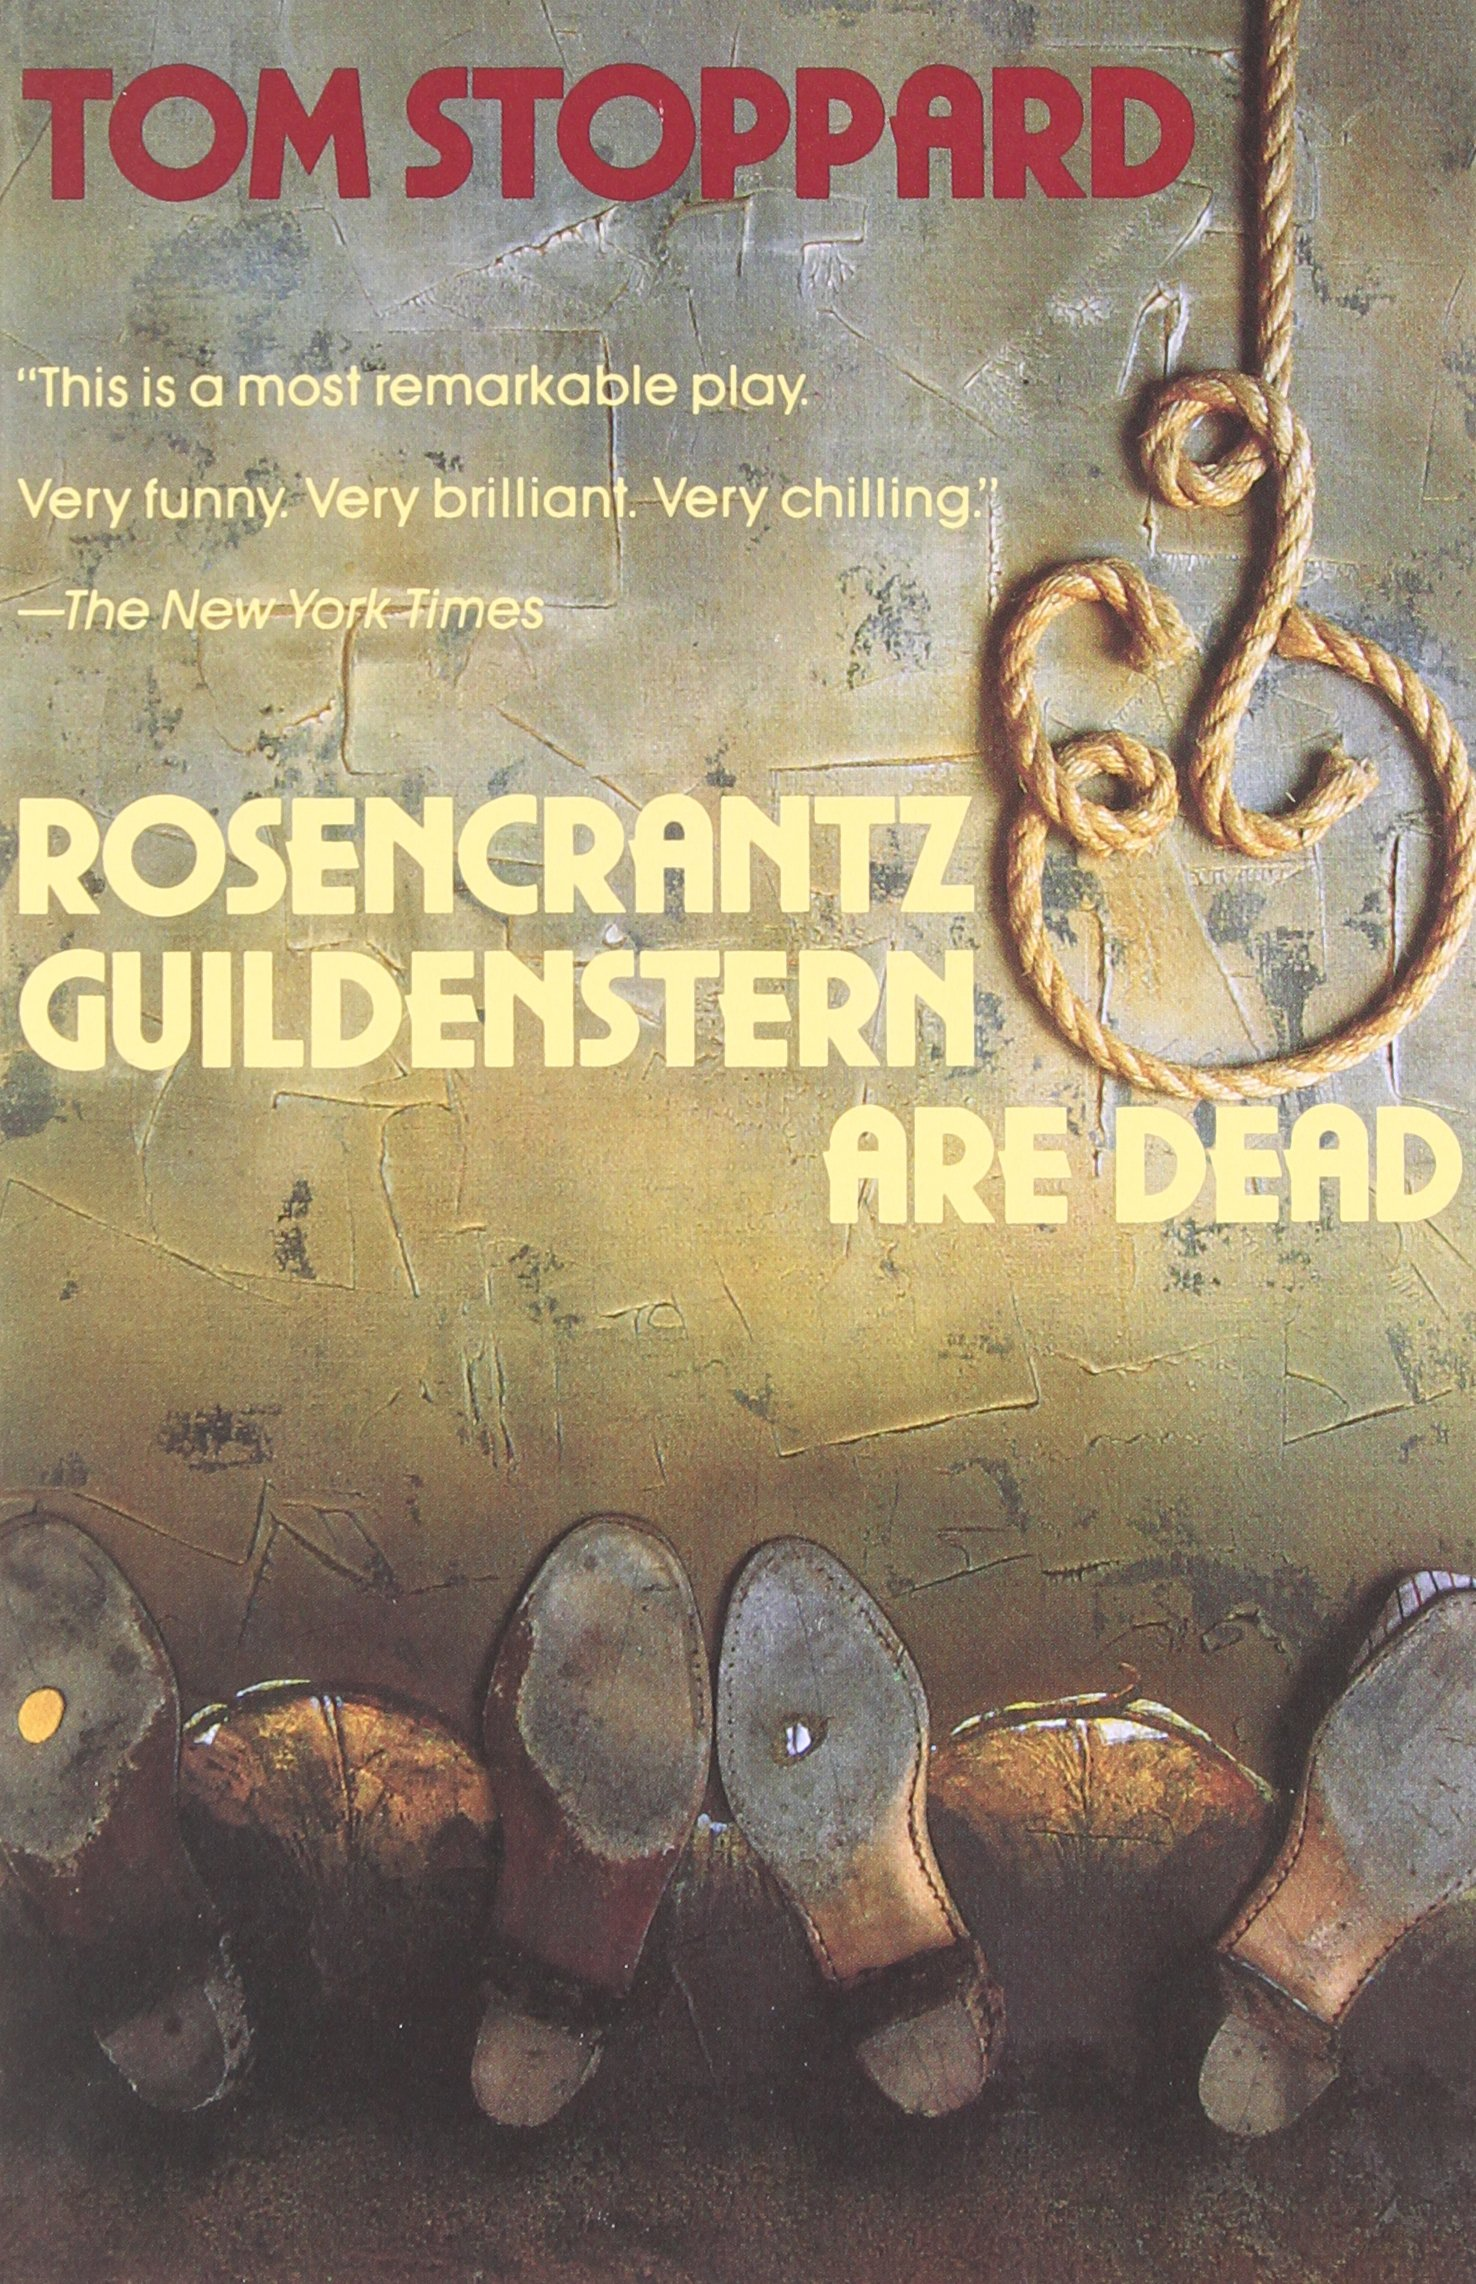 a review of tom soppards rosencrantz and guildenstern are dead